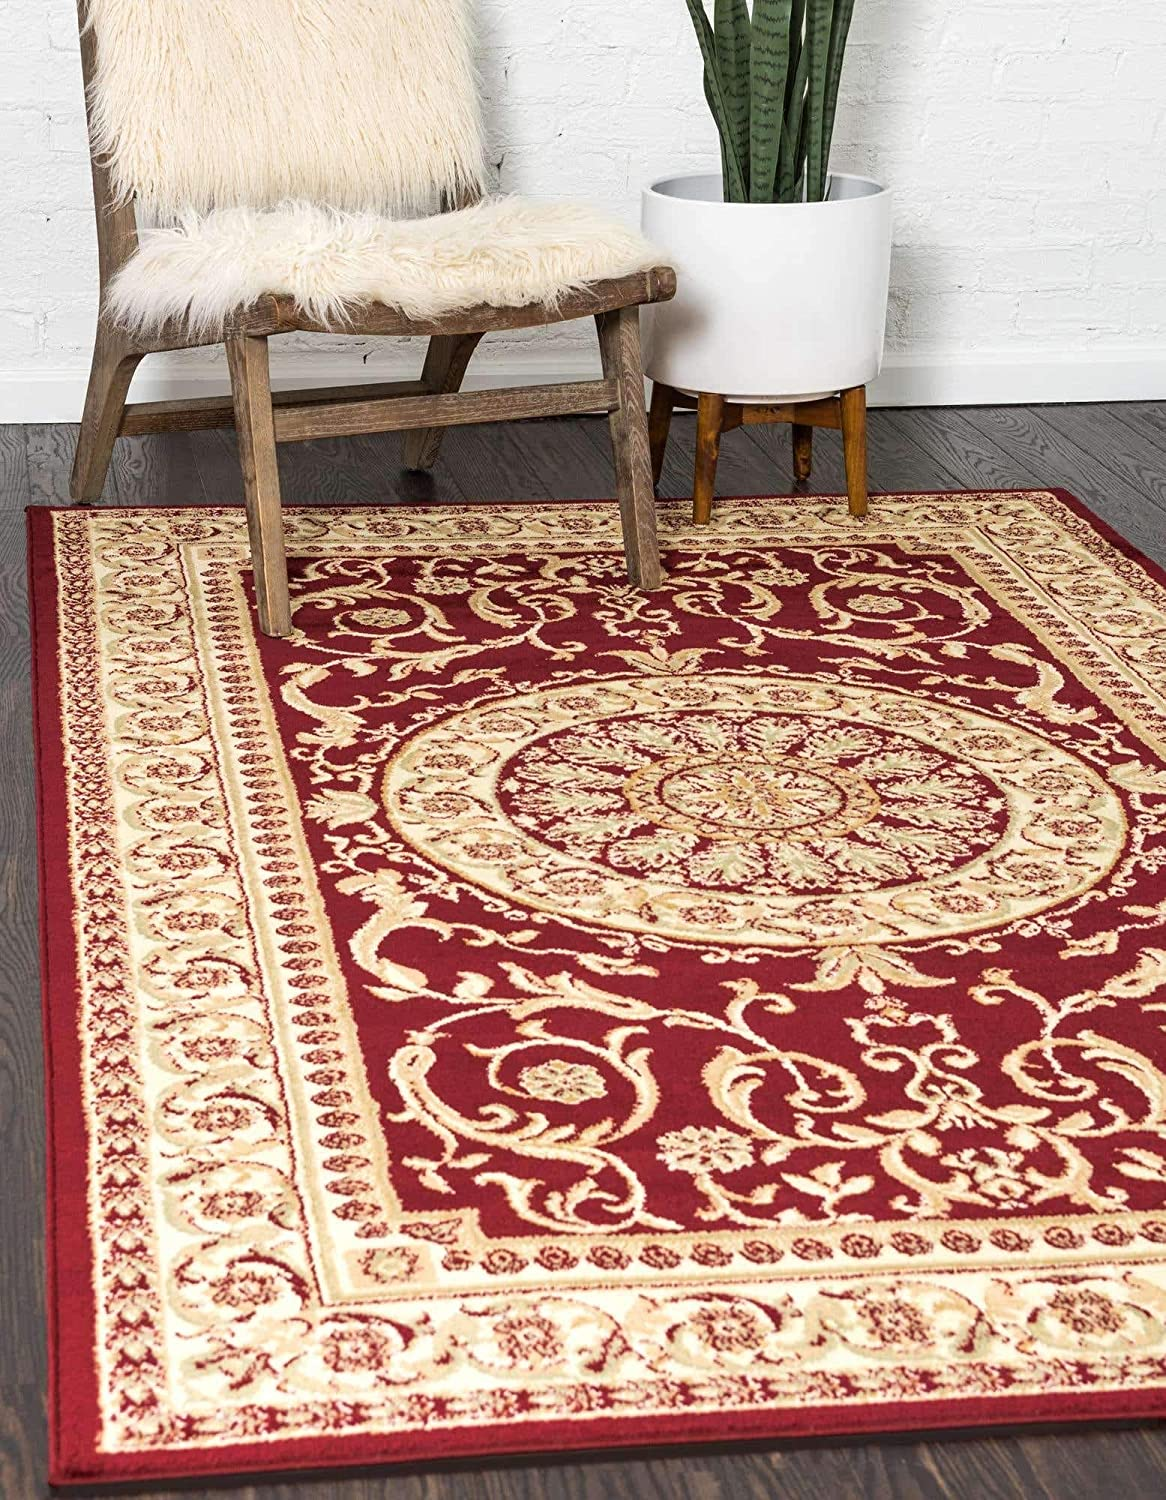 Unique Loom Versailles Collection Traditional Classic Red Area Rug (5' 0 x 8' 0)